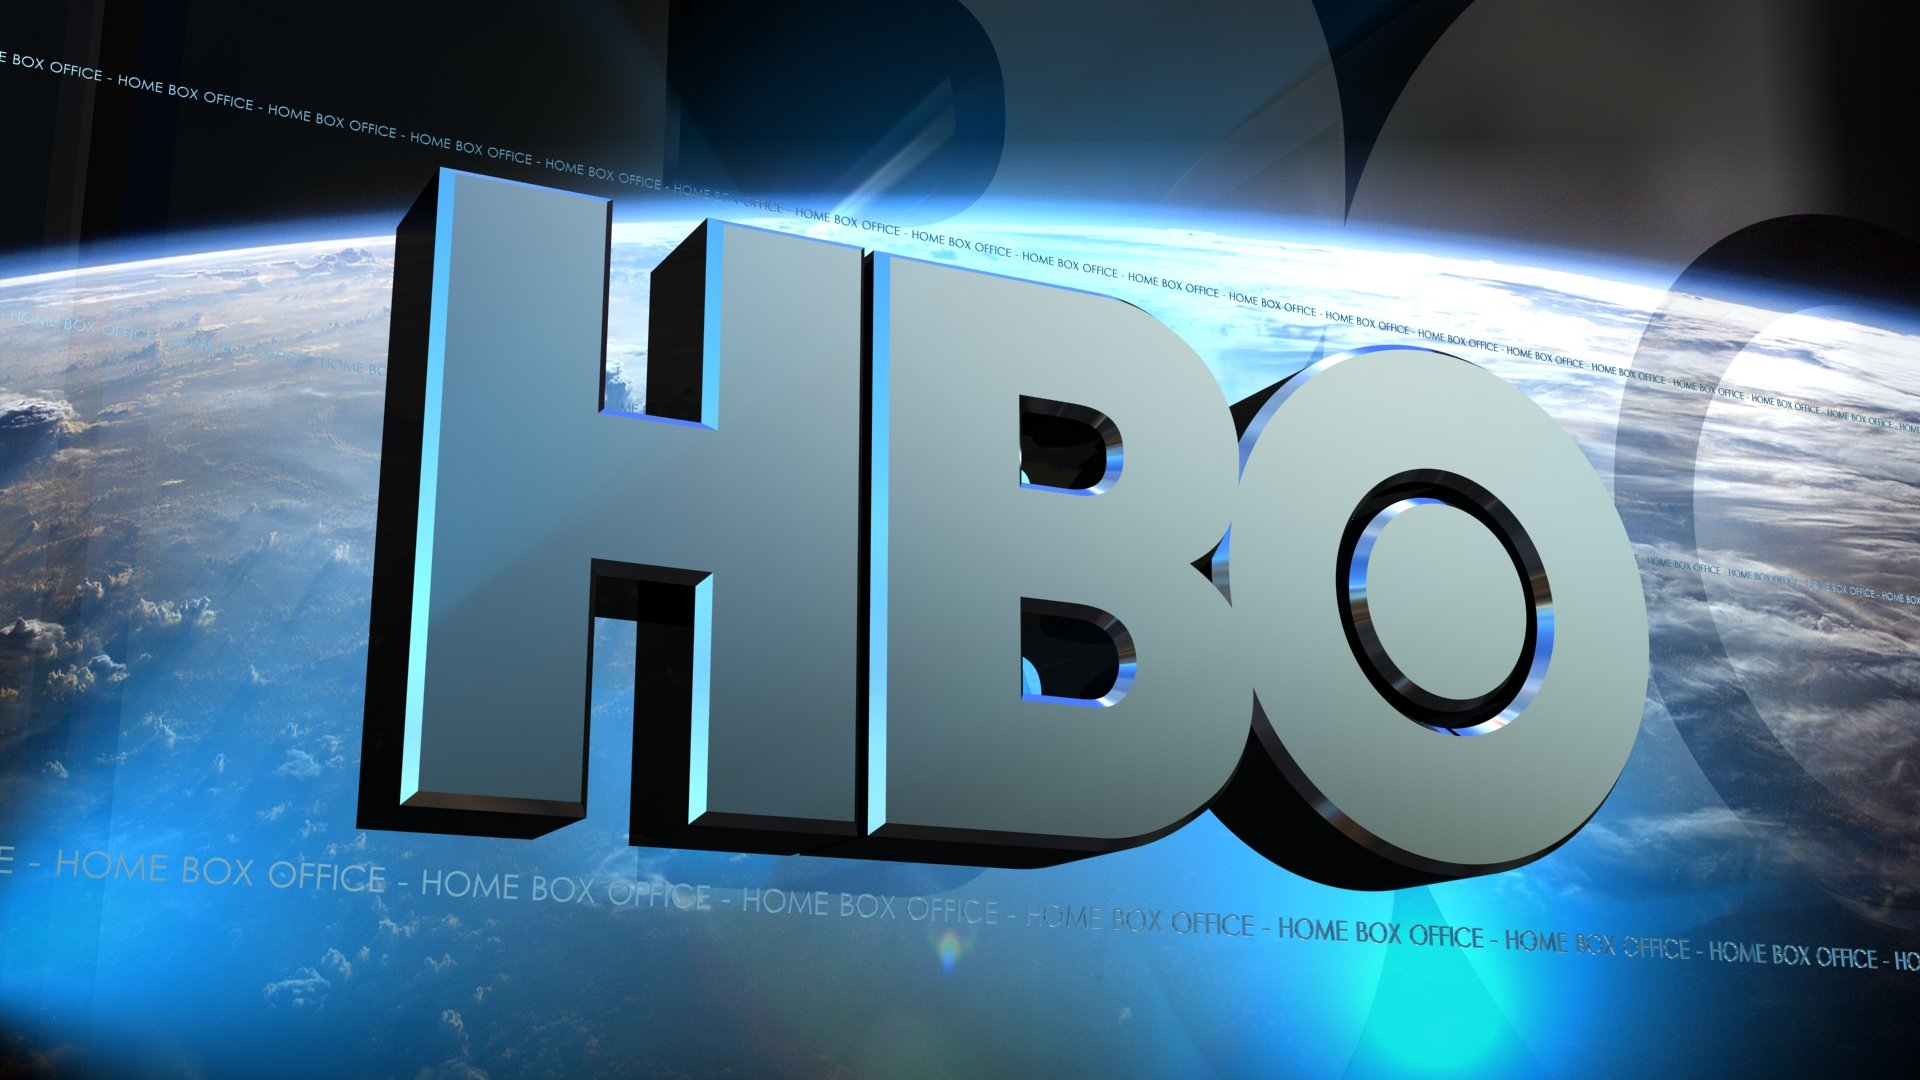 the impact of hbo in the viewing experience of americans Game of thrones may not be hbo's most popular show, but some might argue that it's the cable network's top show at the moment the fantasy adventure about the men and women of the seven kingdoms and their quest for power has united both nerdy reader and pop culture enthusiast alike.